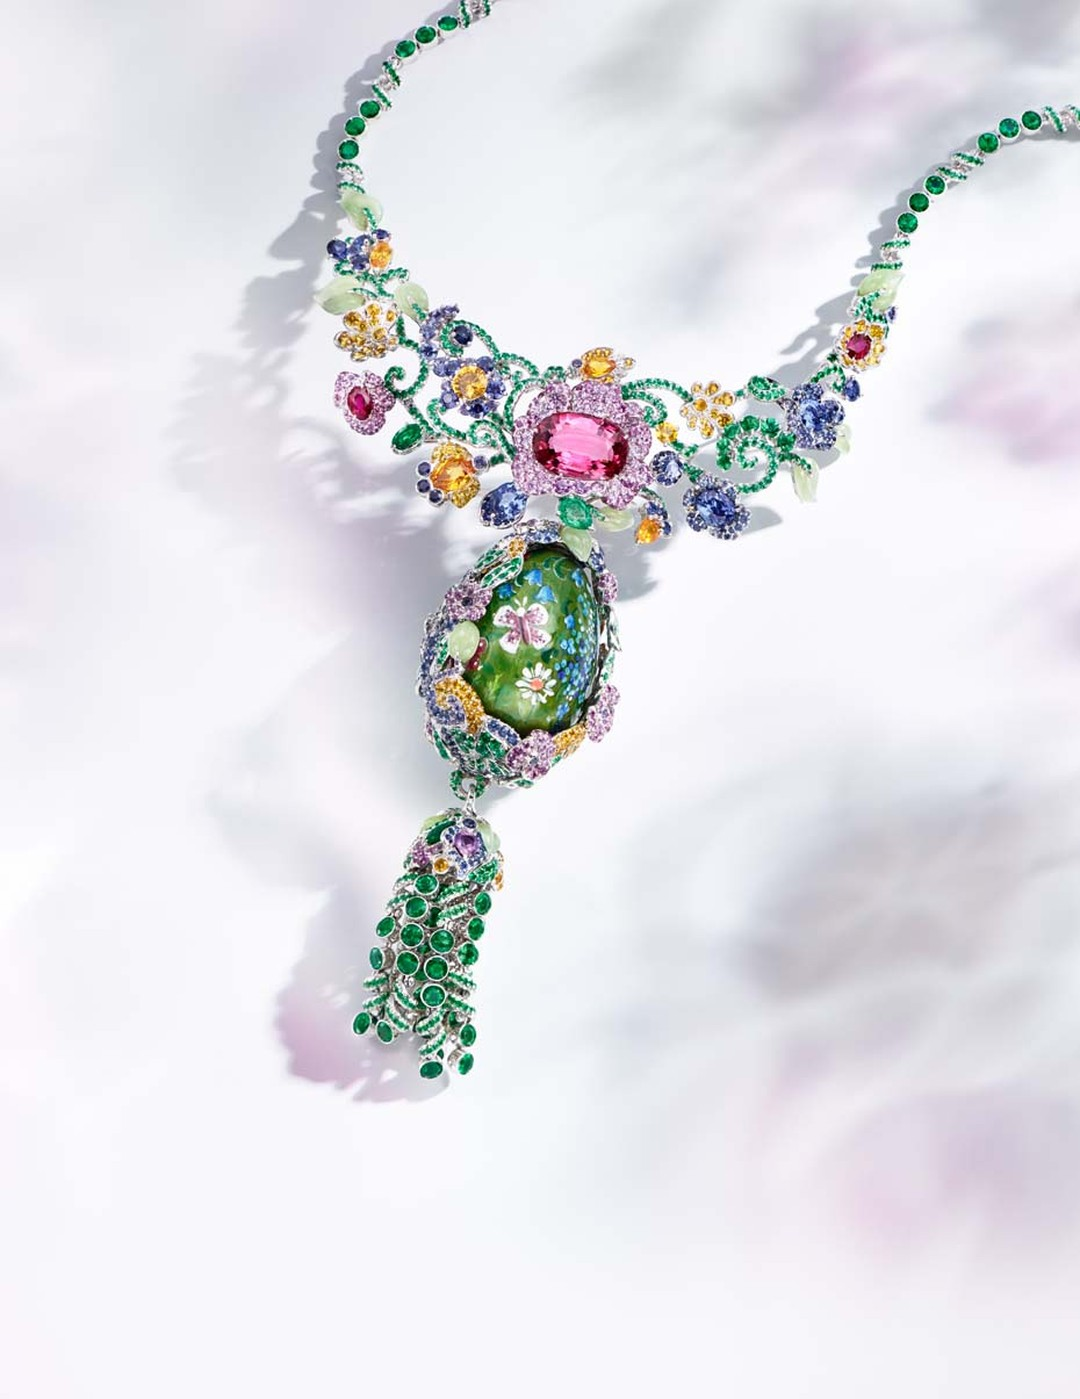 Fabergé will be showcasing both mid-range jewelry as well as a selection of awe-inspiring masterpieces at the Couture Show Las Vegas, including this one-of-a-kind Fabergé necklace, the centerpiece of the Secret Garden collection, with a detachable, rotati